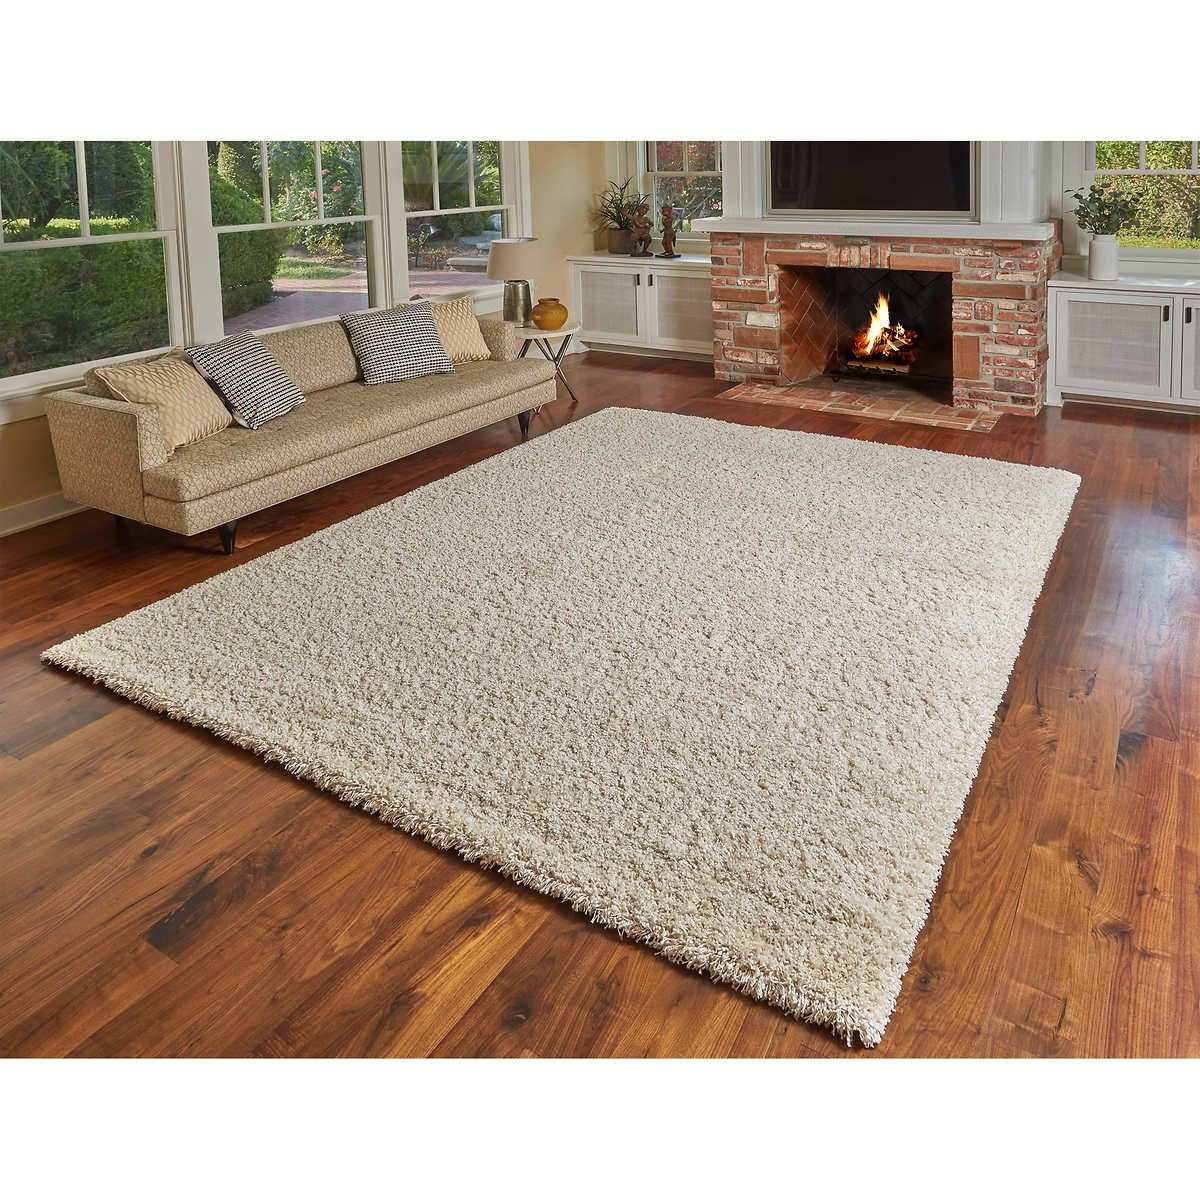 Furry Rugs for Bedroom Fresh Shawneens Rug 8x10 9 5 X13 In Other Colors